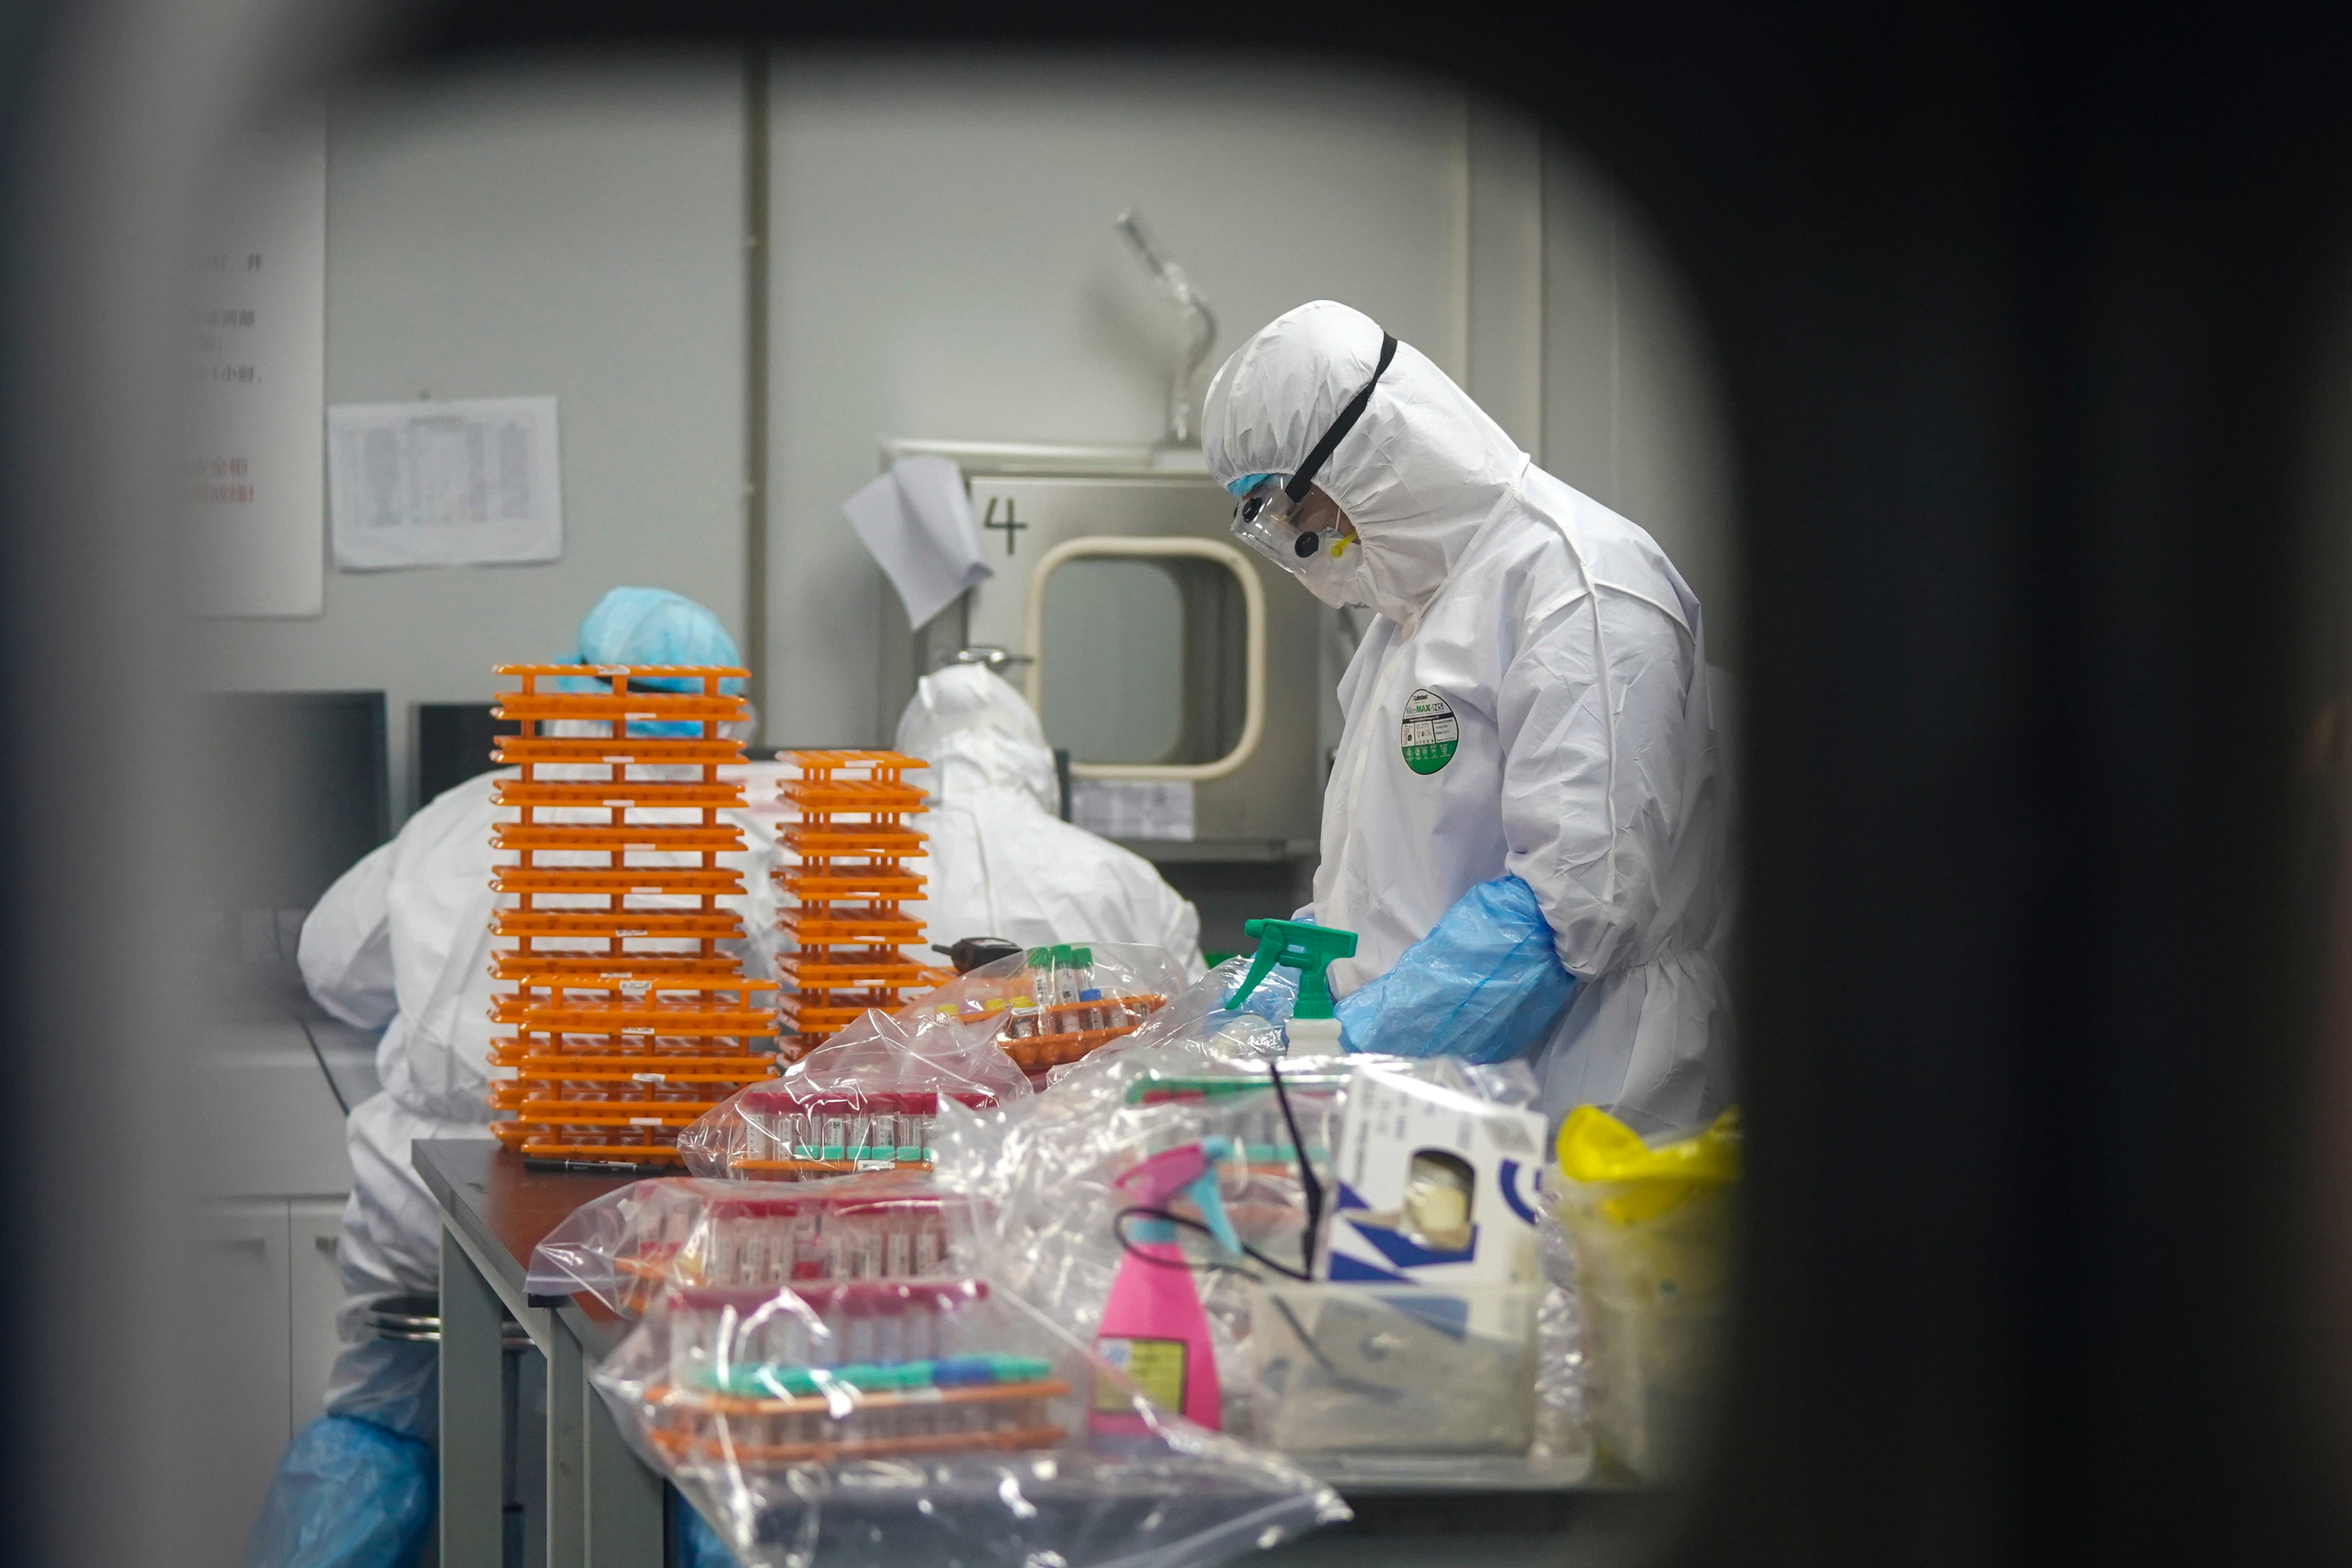 Chinese authorities continue to obstruct world's ability to get answers on virus 2